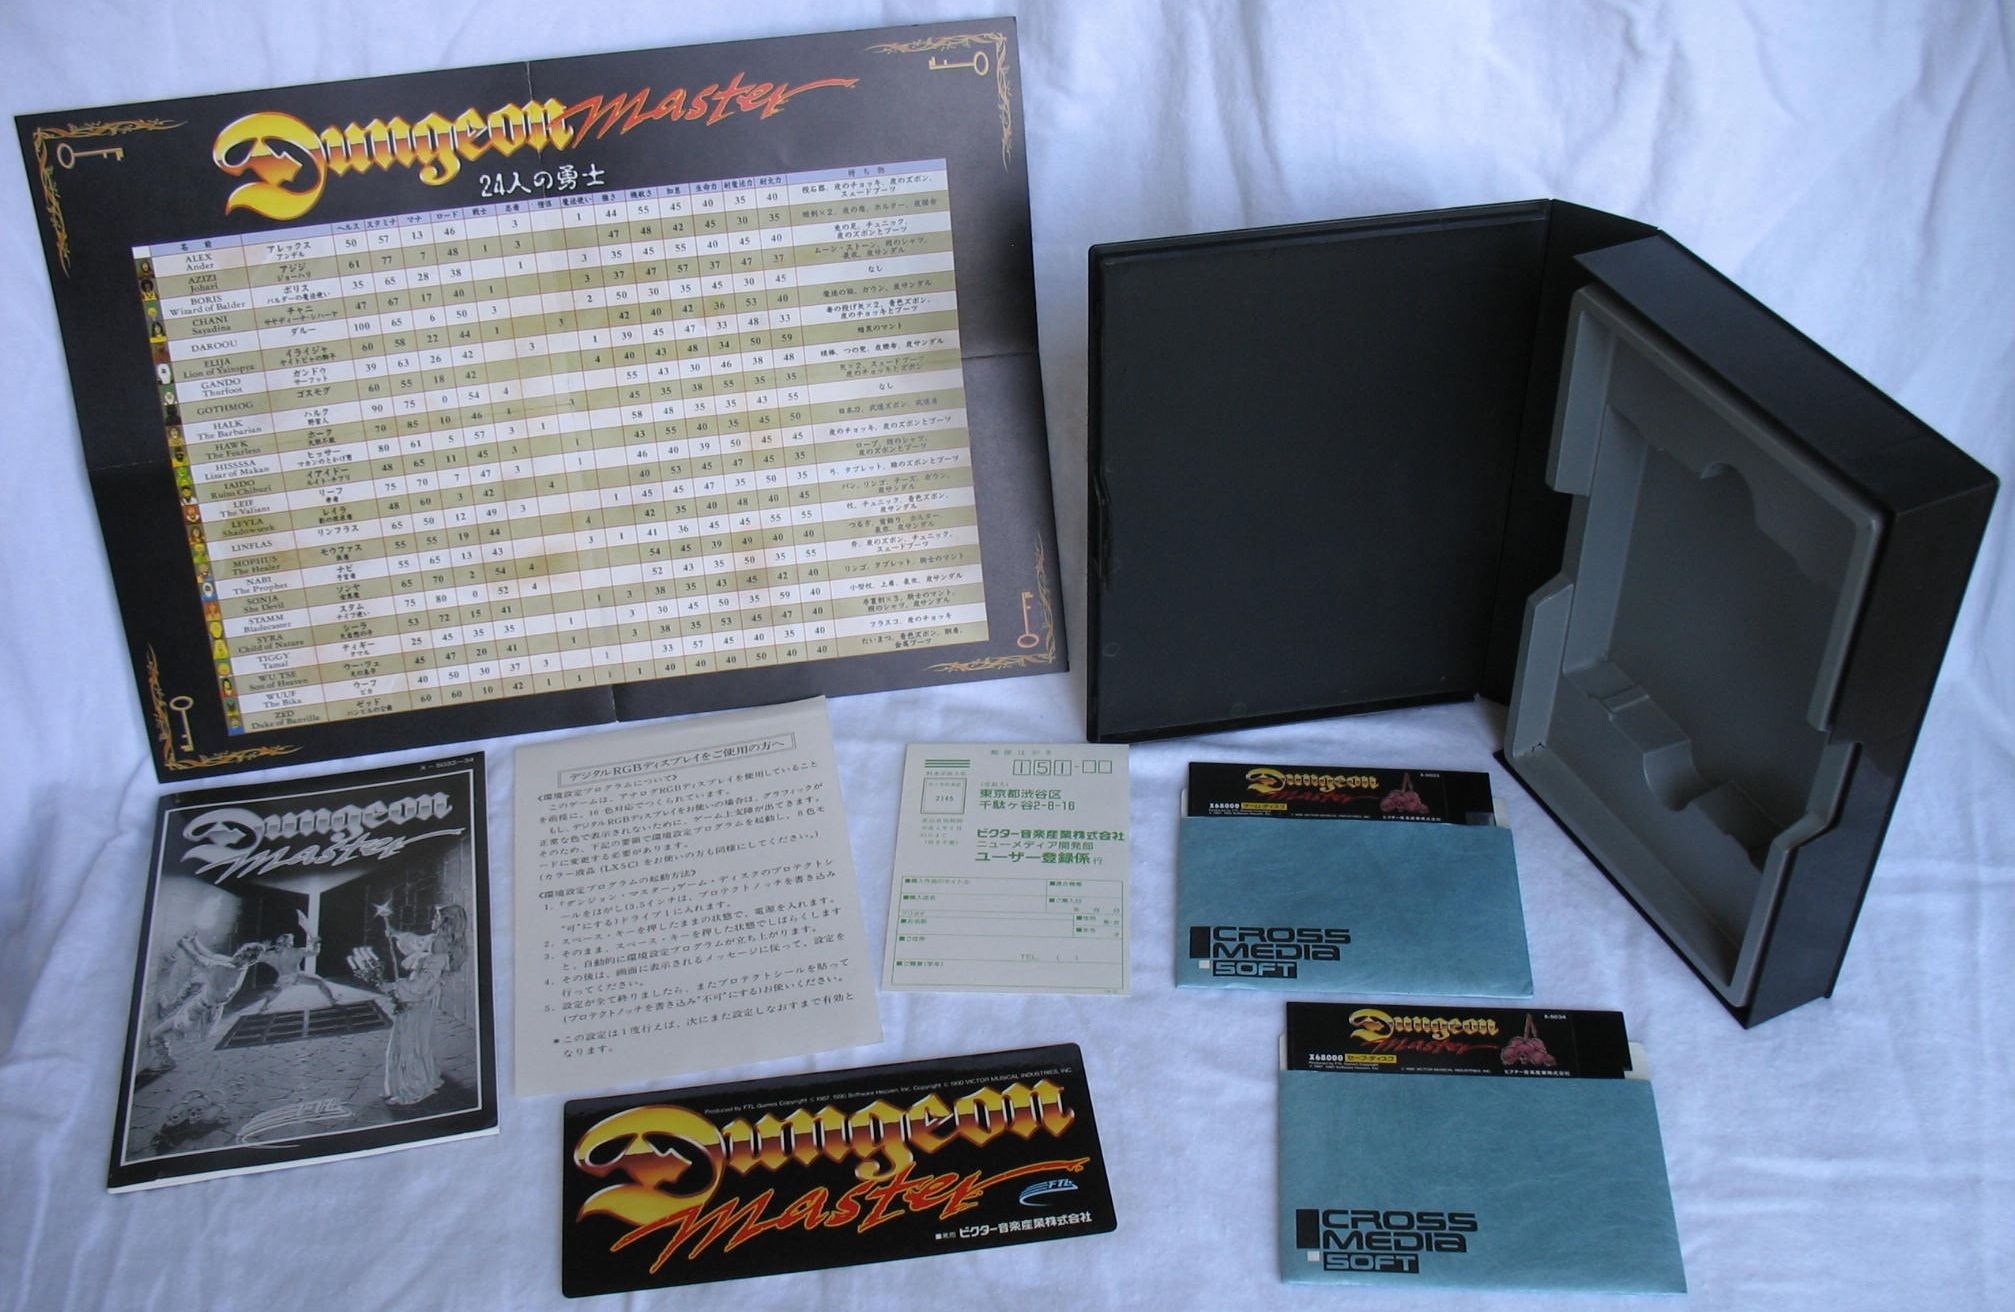 Game - Dungeon Master - JP - X68000 - All - Overview - Photo